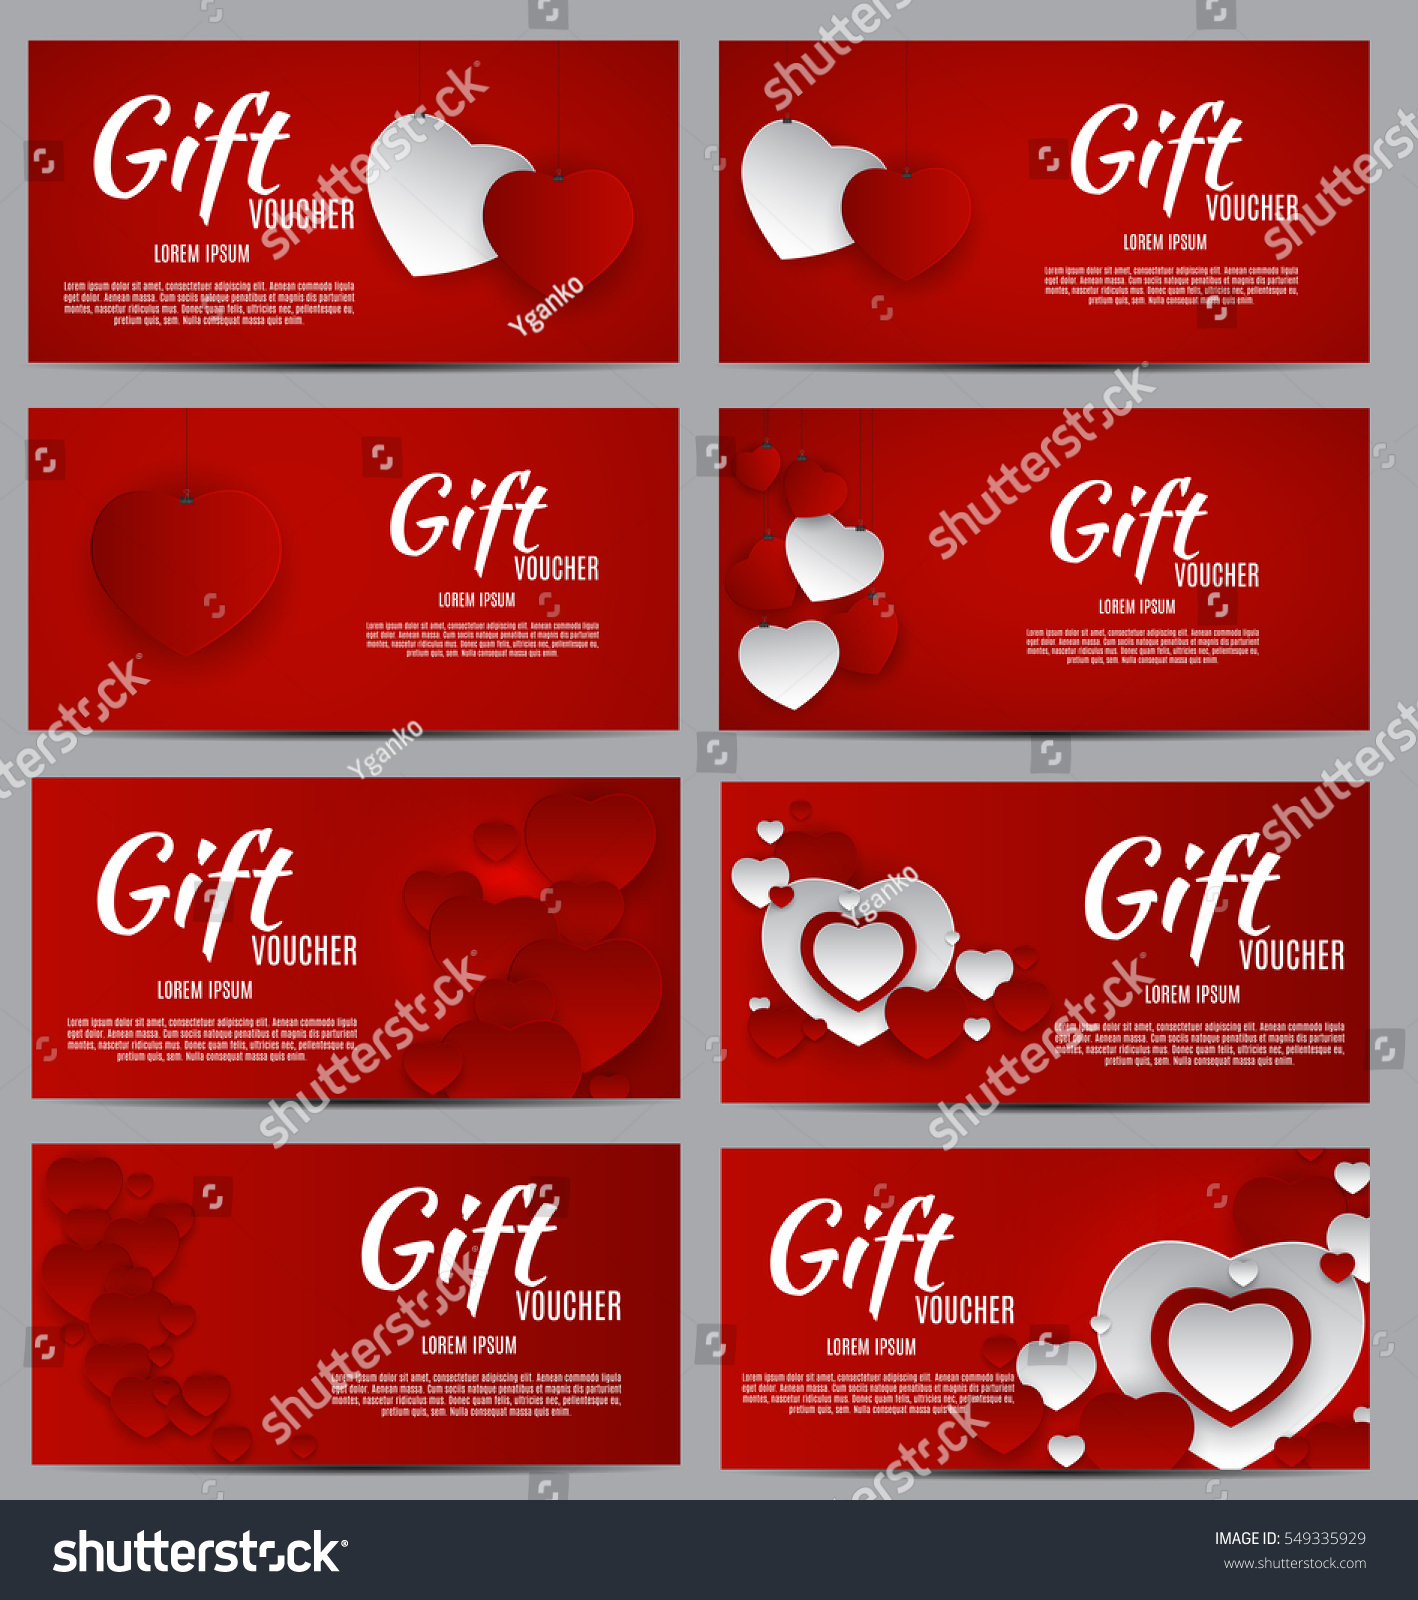 Gift Voucher Template Your Business Valentines Stock Vector ...